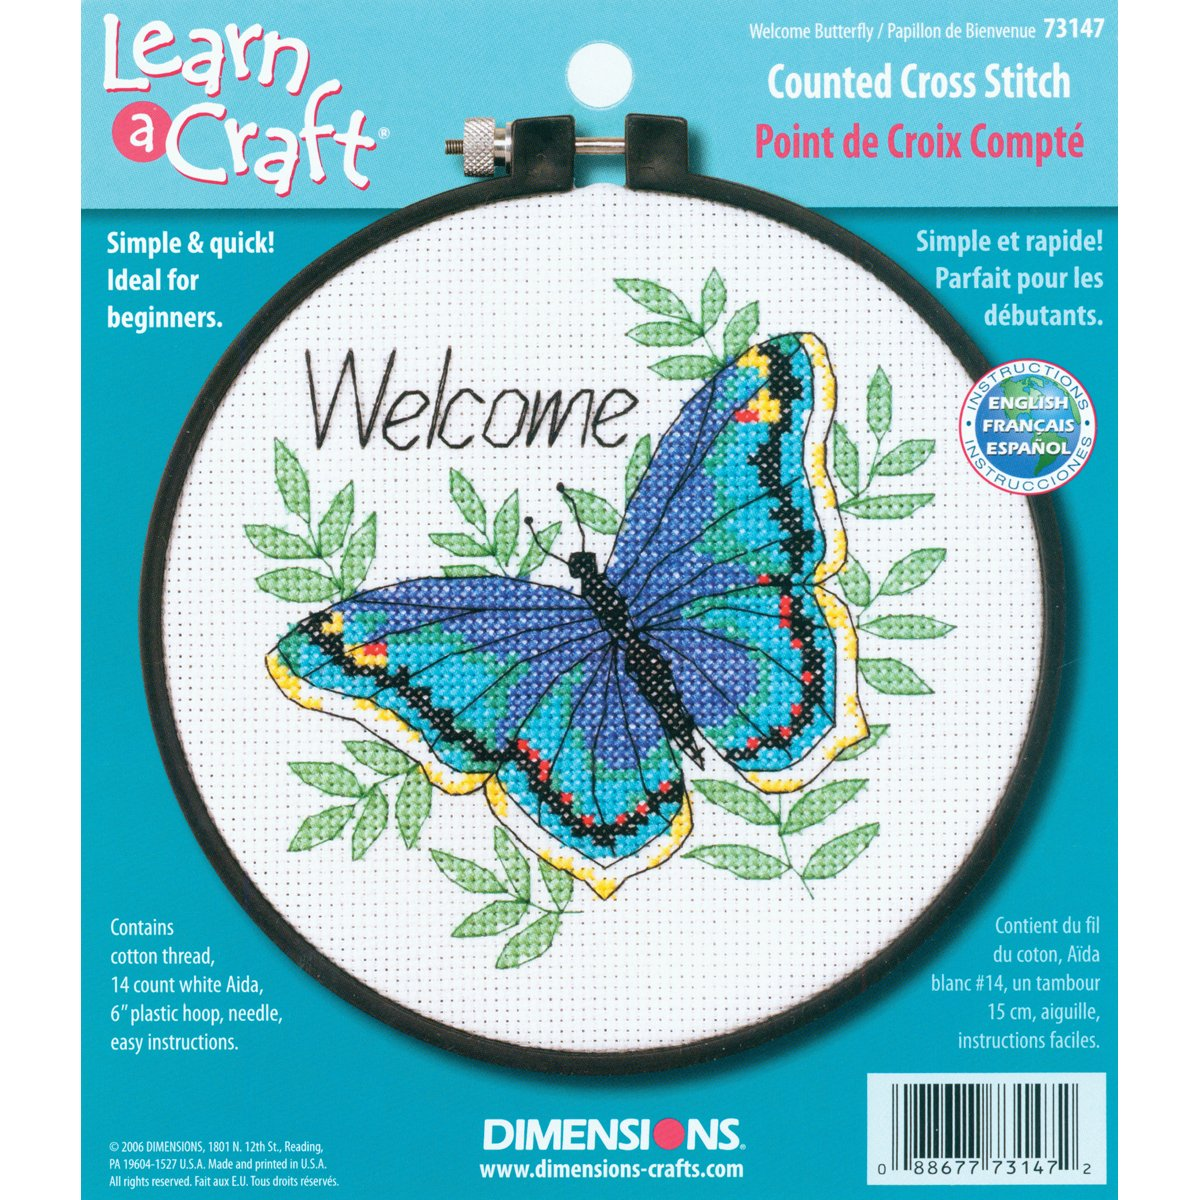 DIMENSIONS 73147 Needlecrafts Counted Cross Stitch, Welcome Butterfly